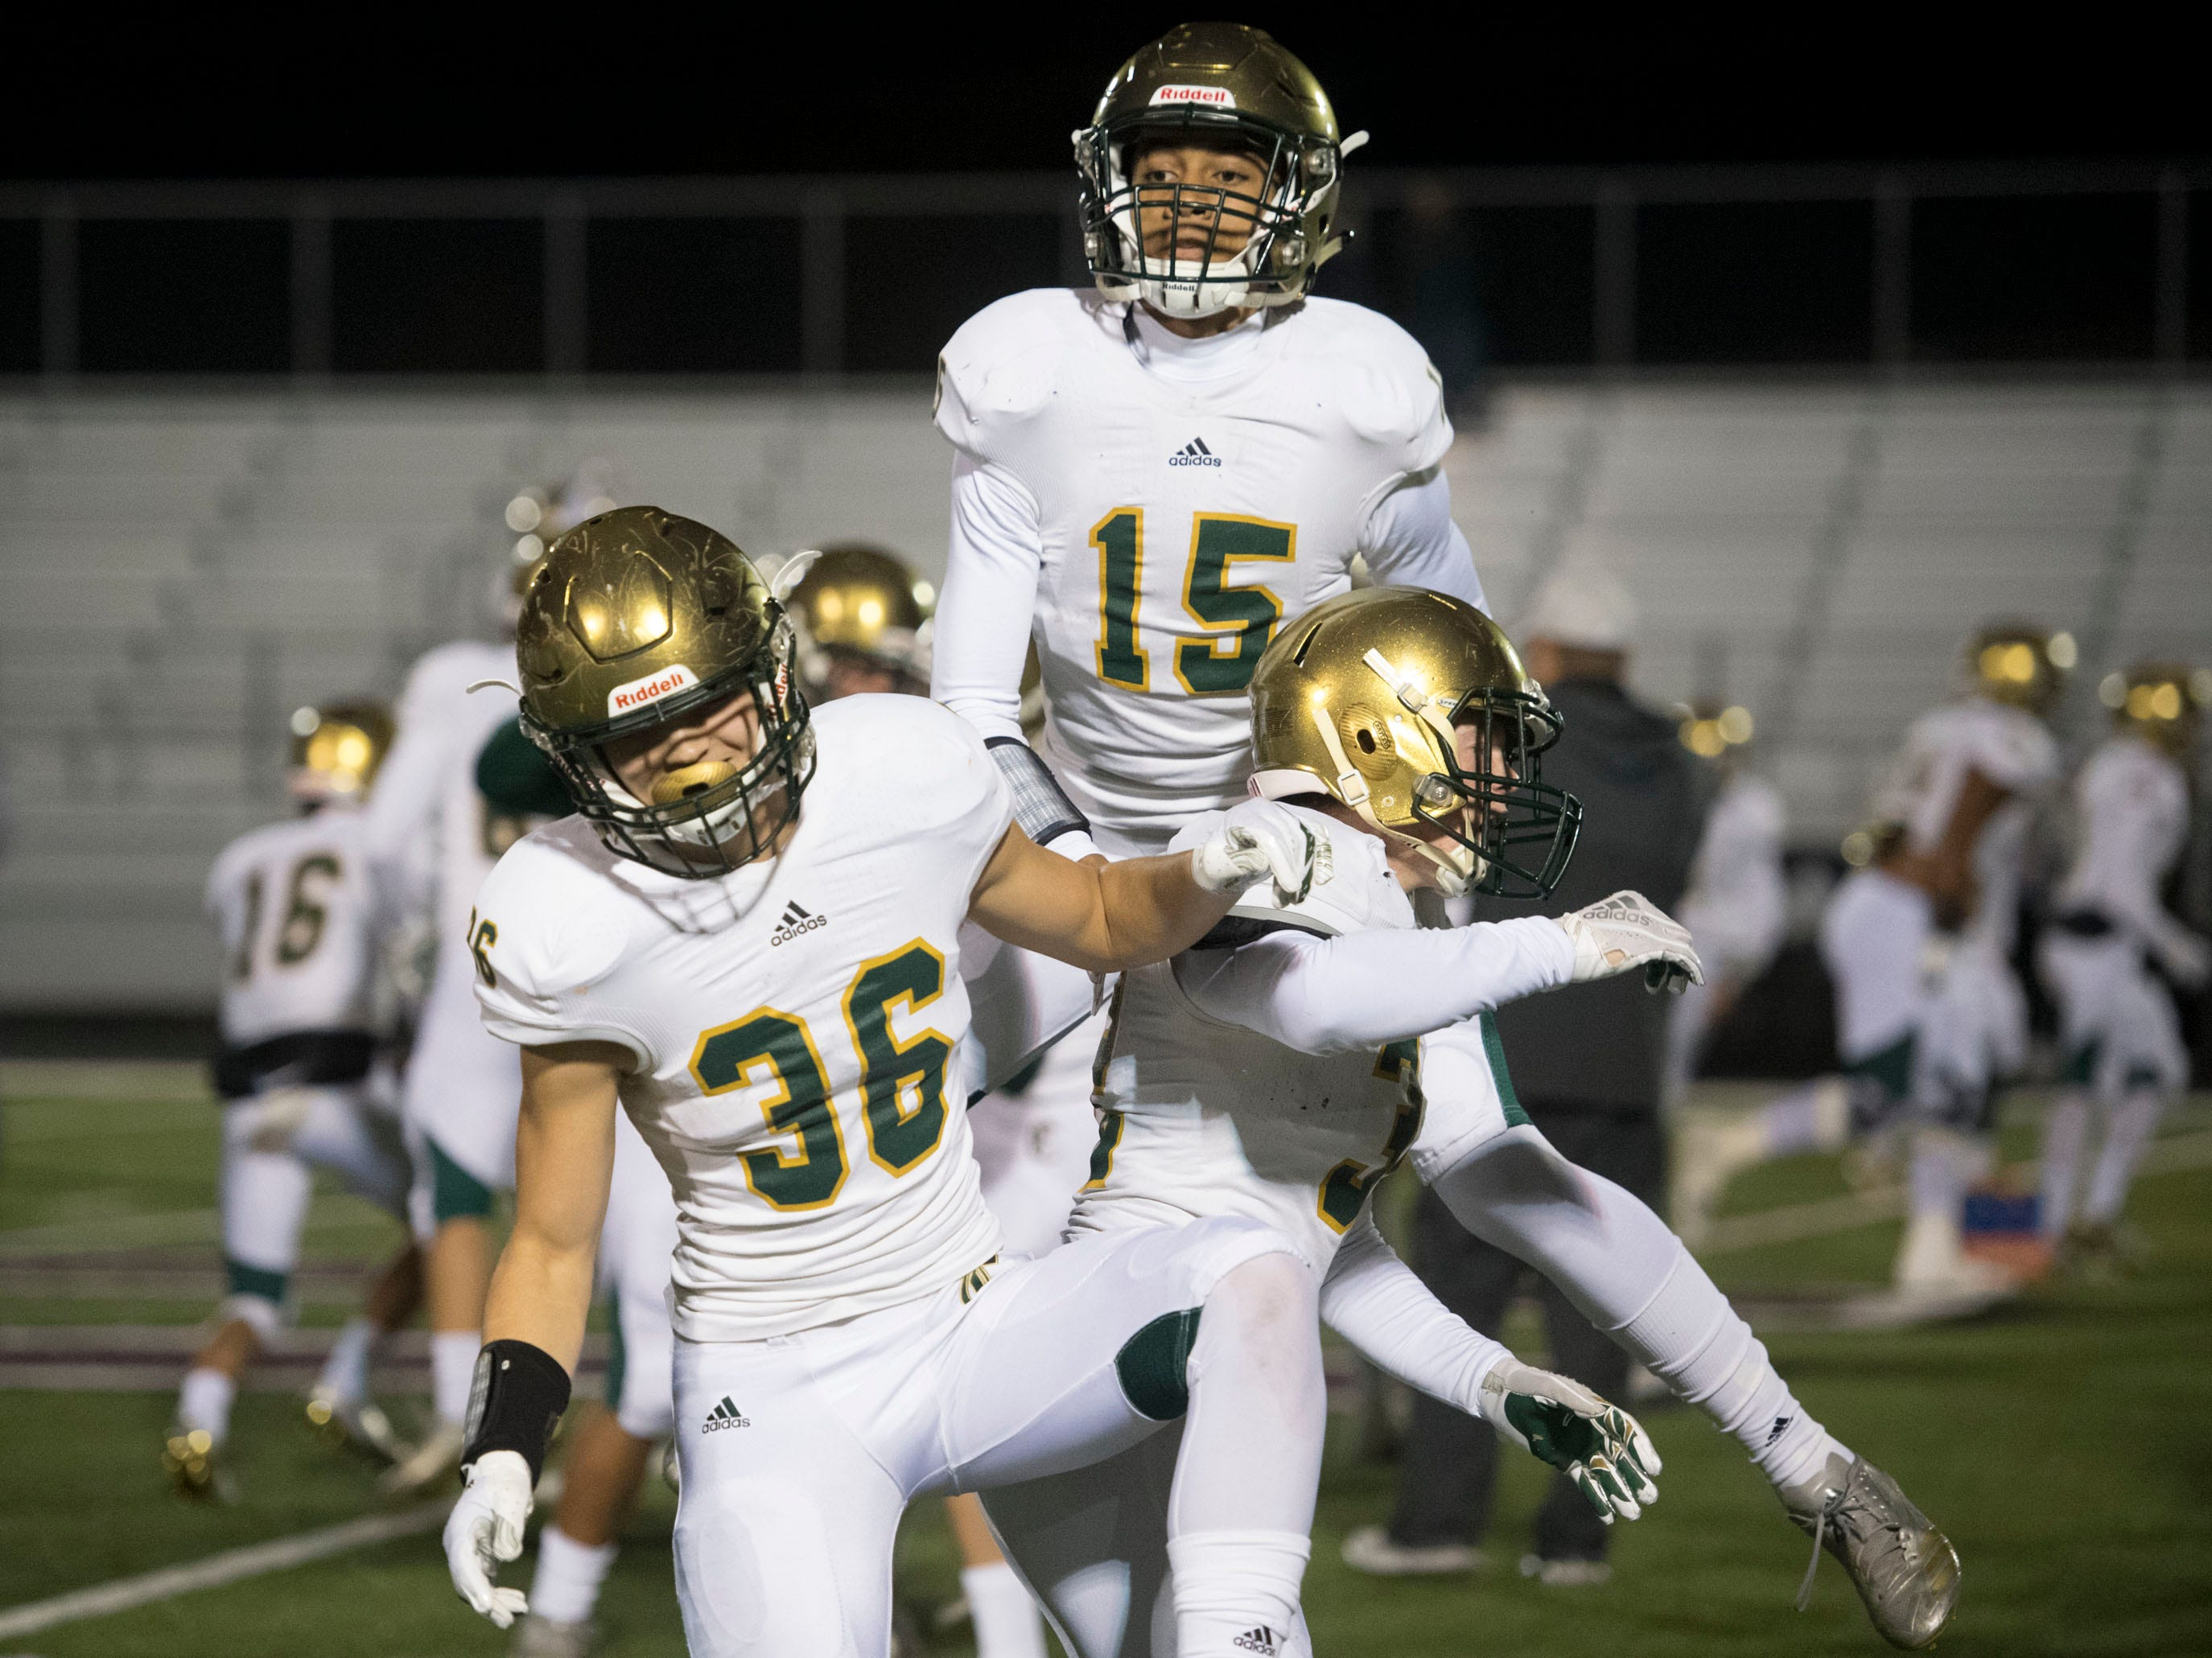 Knoxville Catholic's Zachary Shannon (36), Spencer Margolis (32), and Raaphell Mayes (15) celebrate before the start of the second round playoff against Fulton on Friday, November 9, 2018.